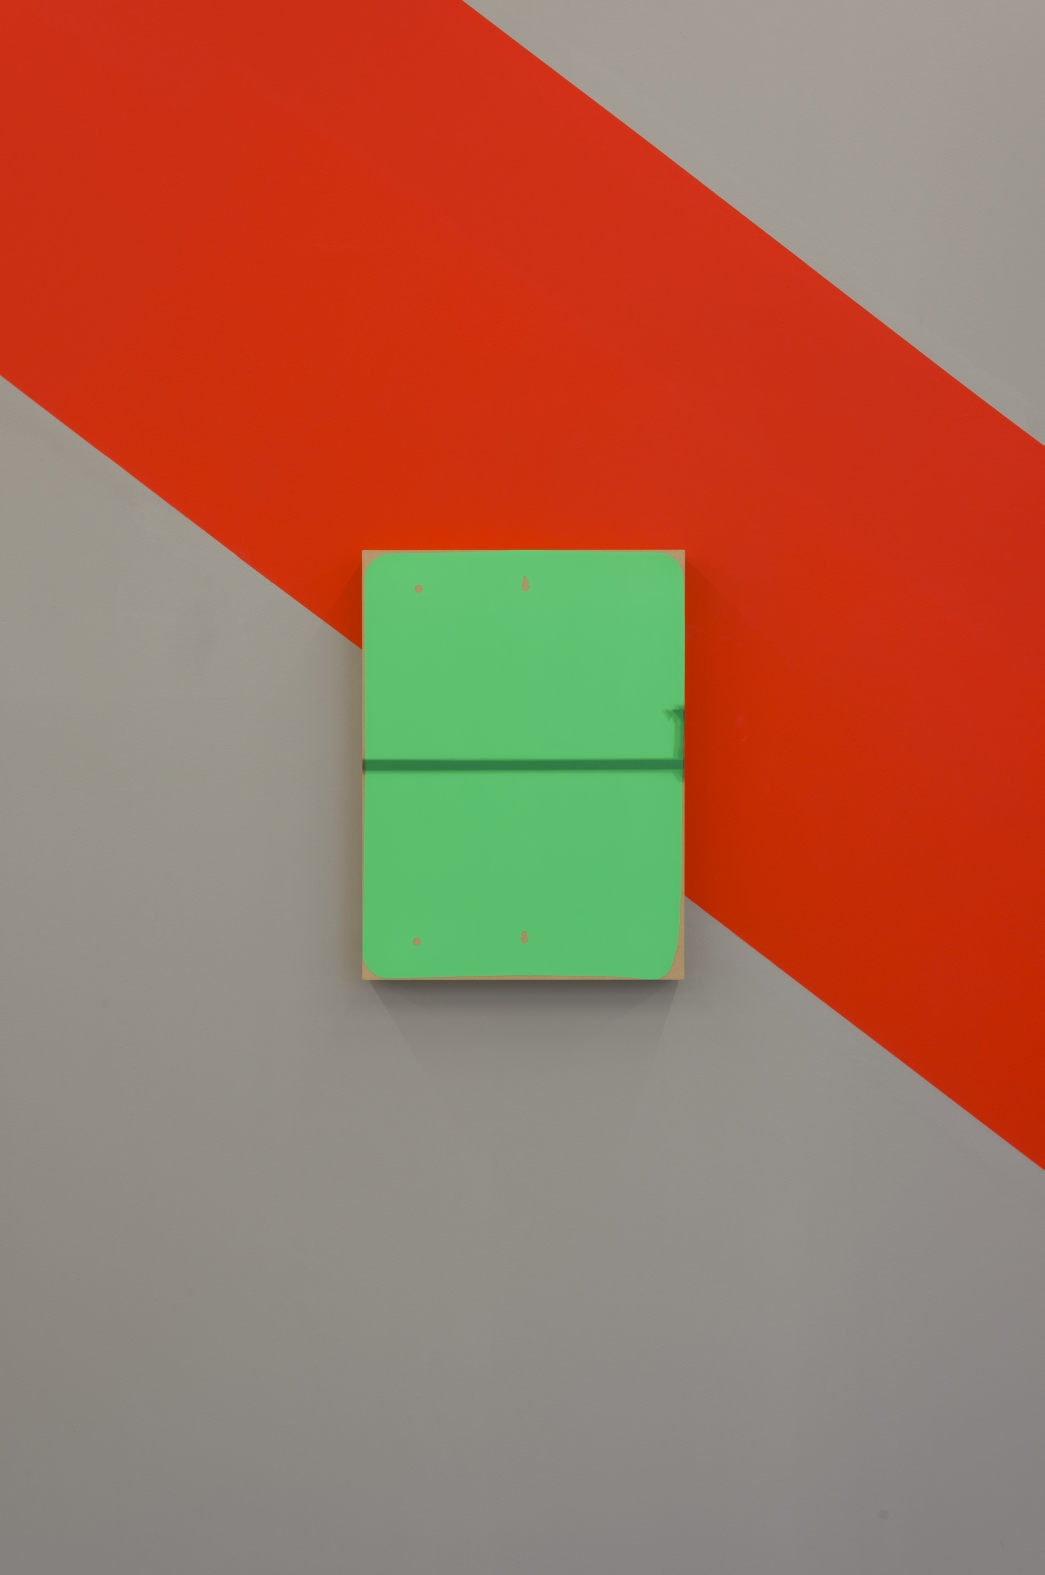 Matthew Metzger  The Signified (Right) , 2013 installation (Mural with panel: Ulta-Matte Video Green Acrylic, Oil on MRMDF), dimensions variable